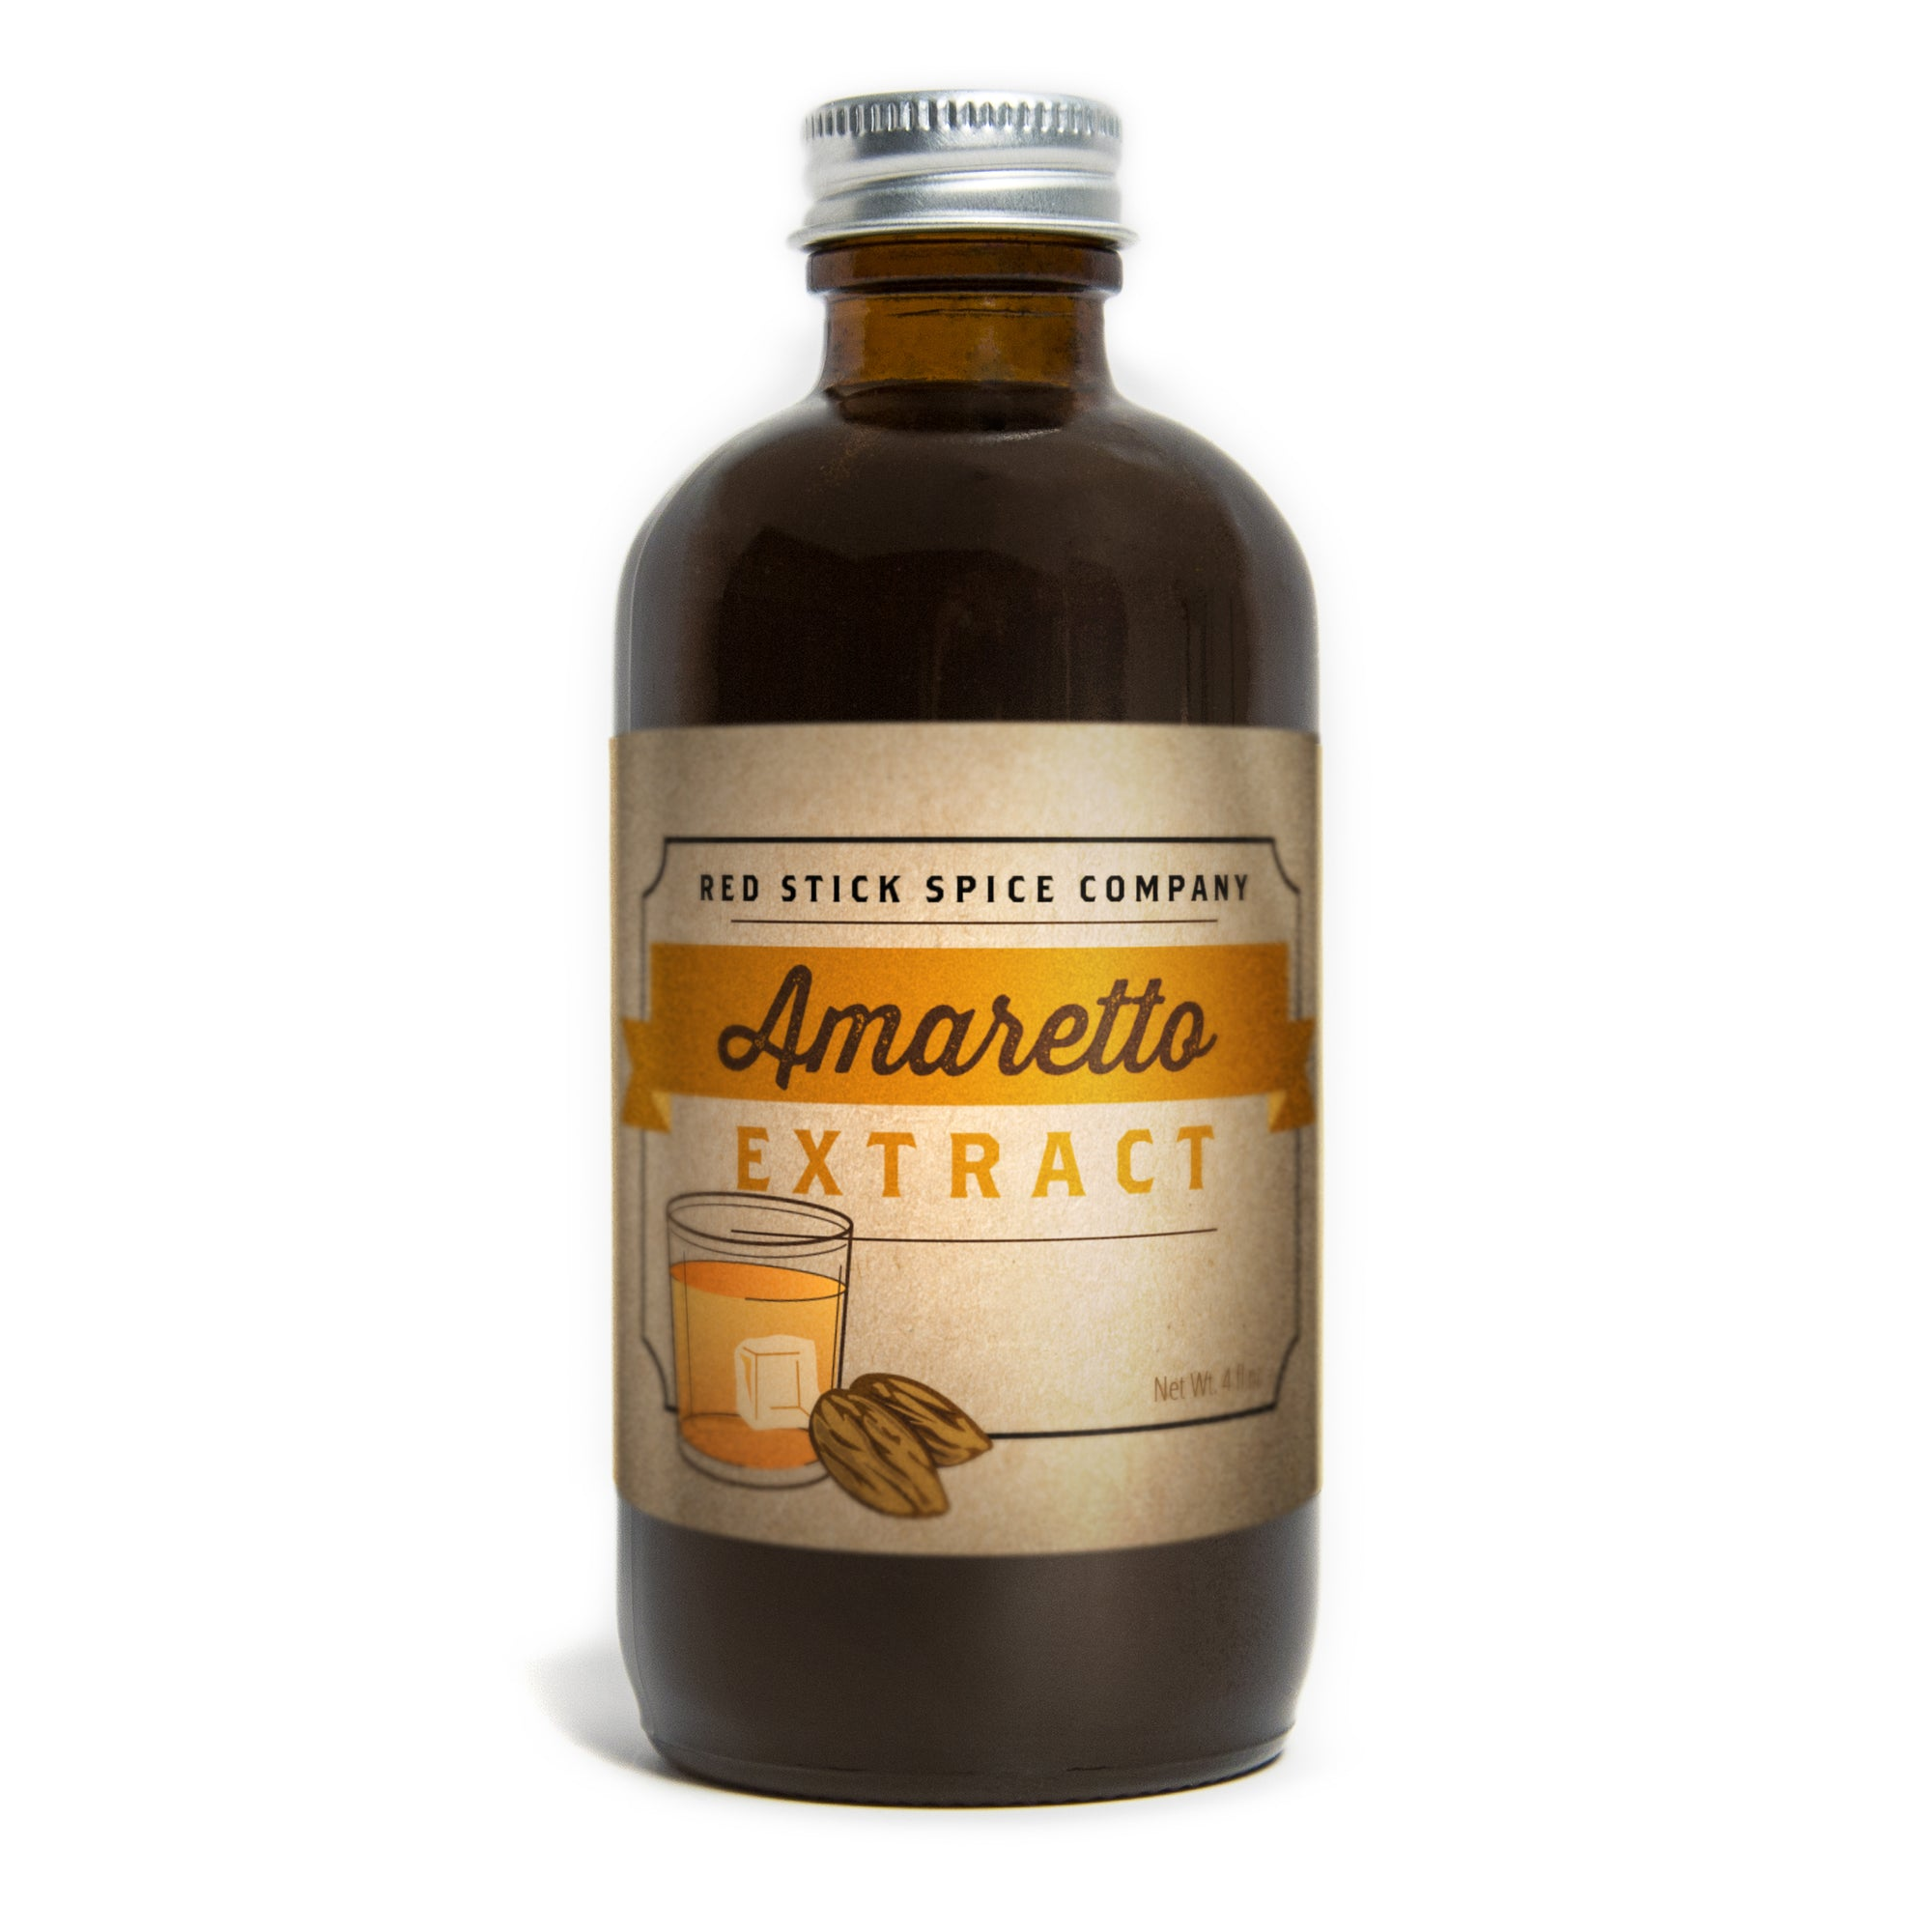 Amaretto Extract